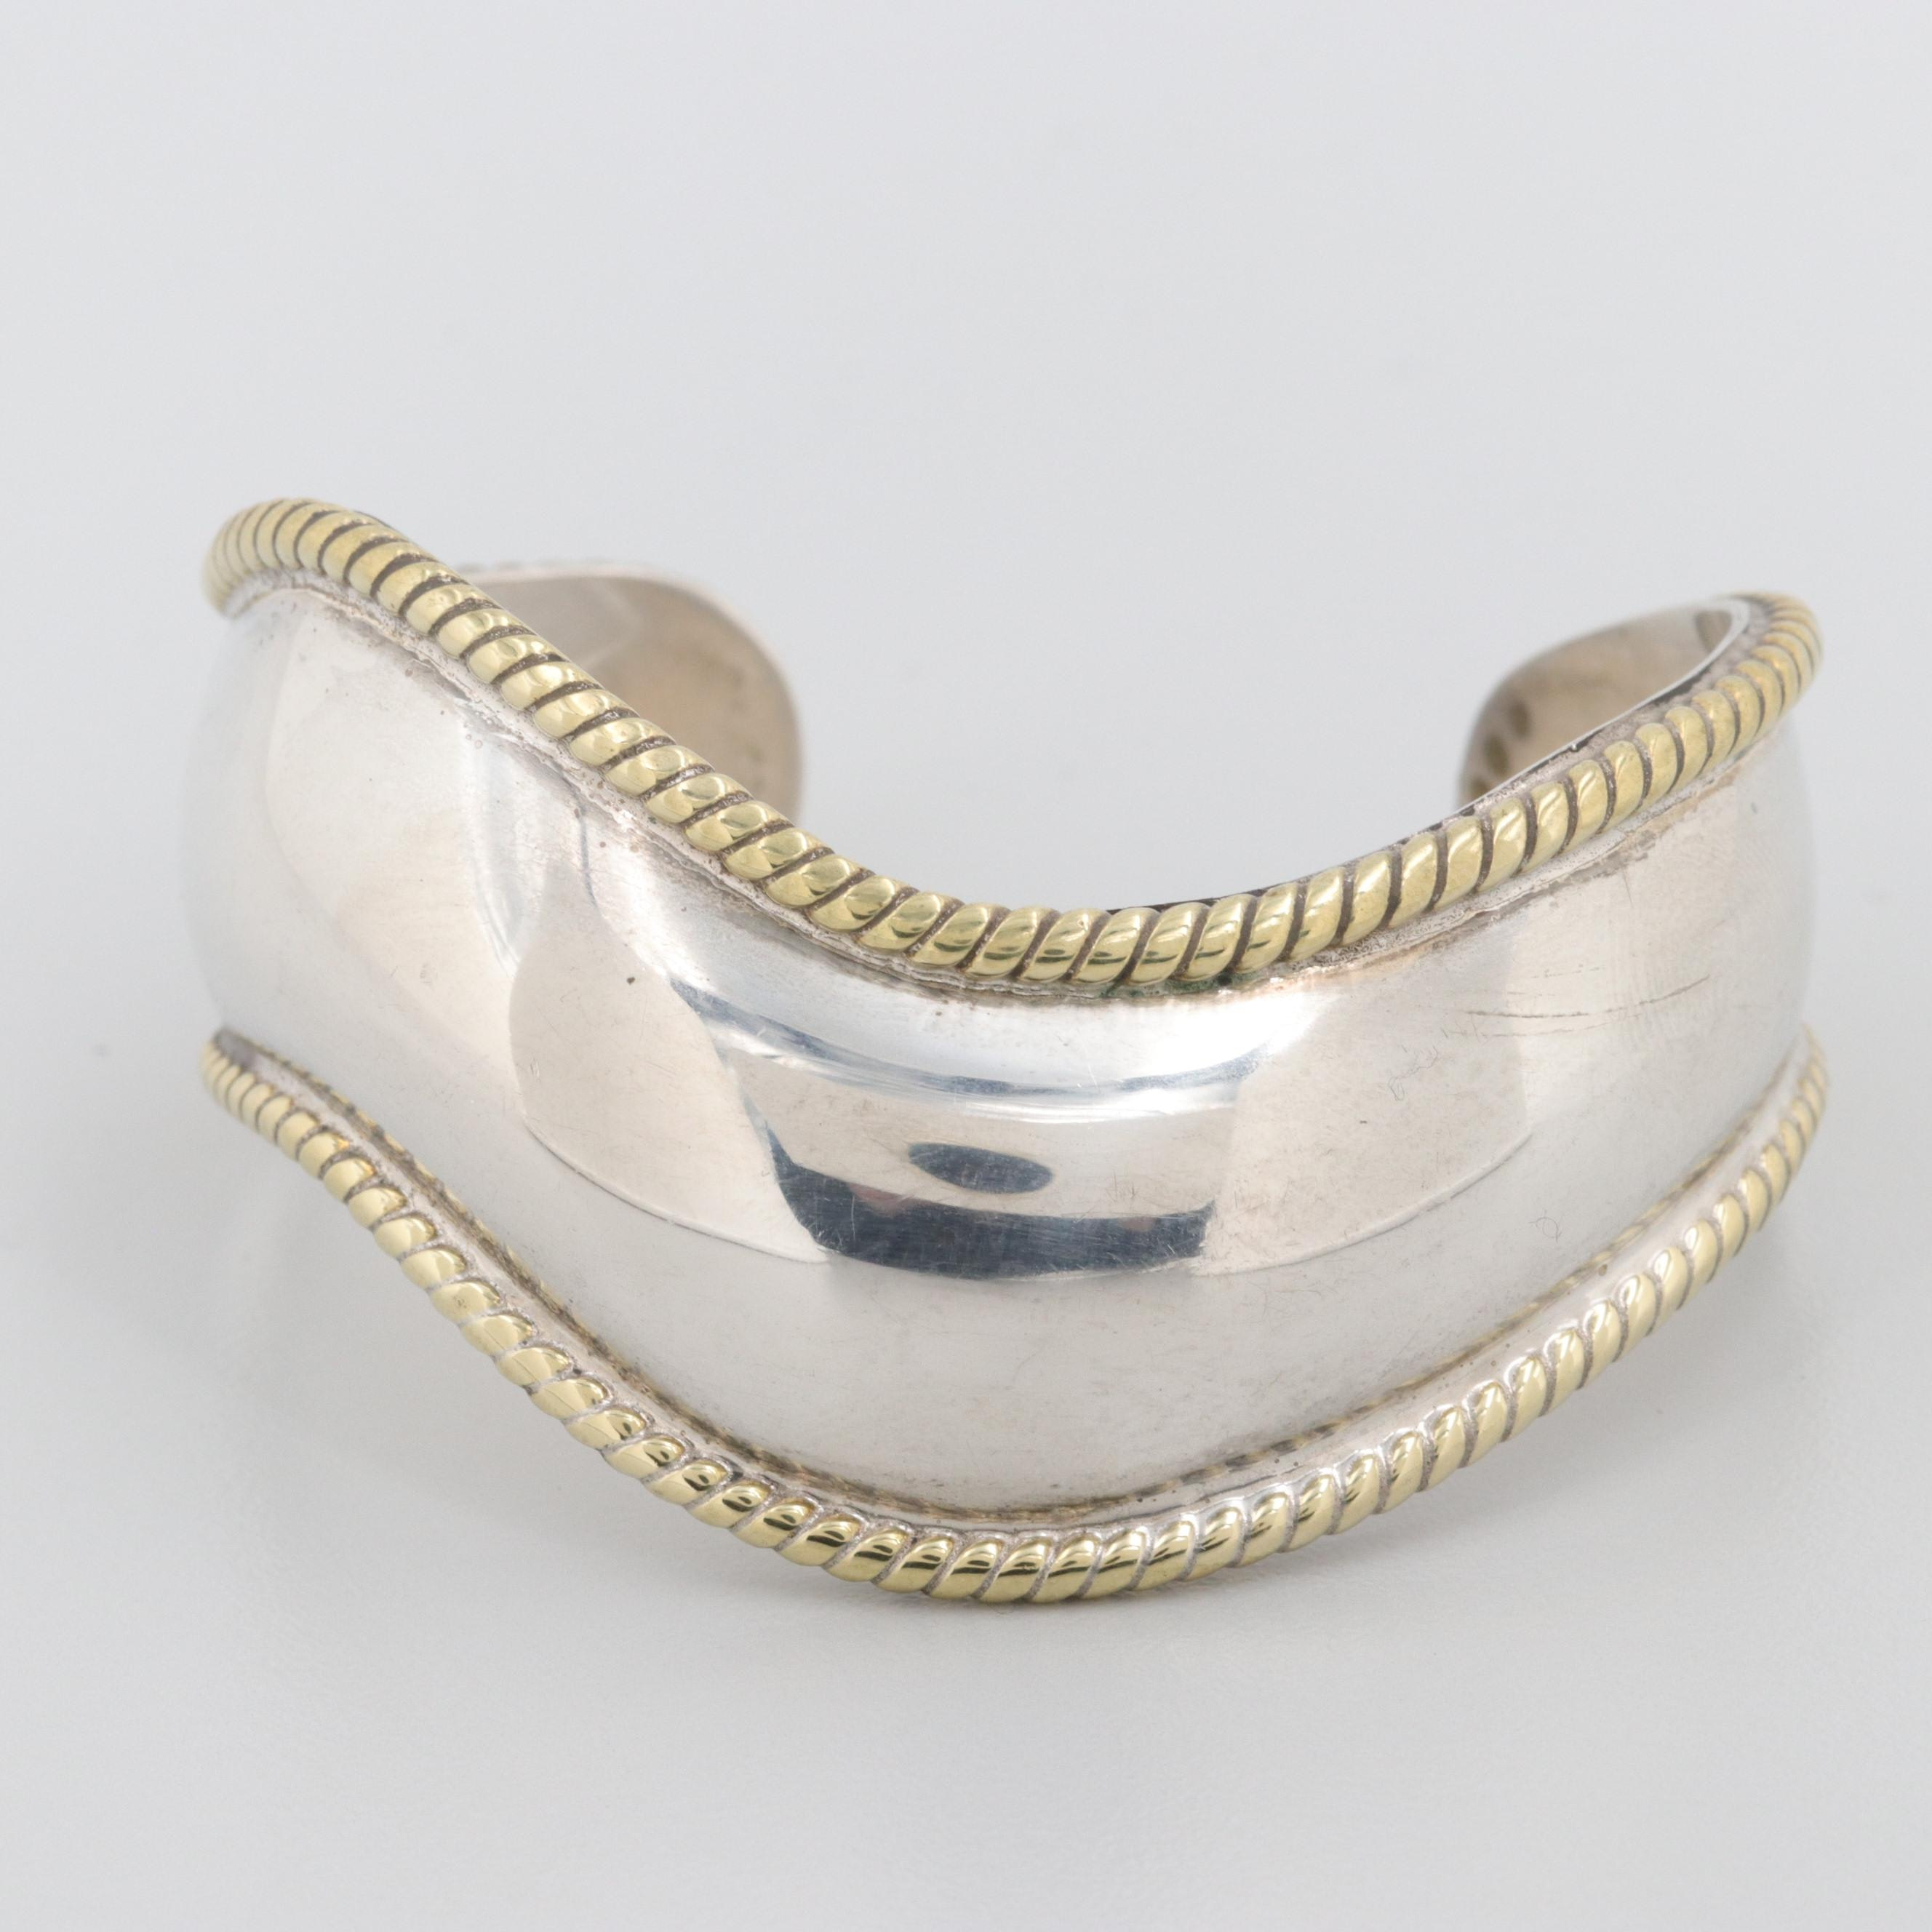 Taxco, Mexico Sterling Silver Cuff Bracelet with Gold Tone Accents